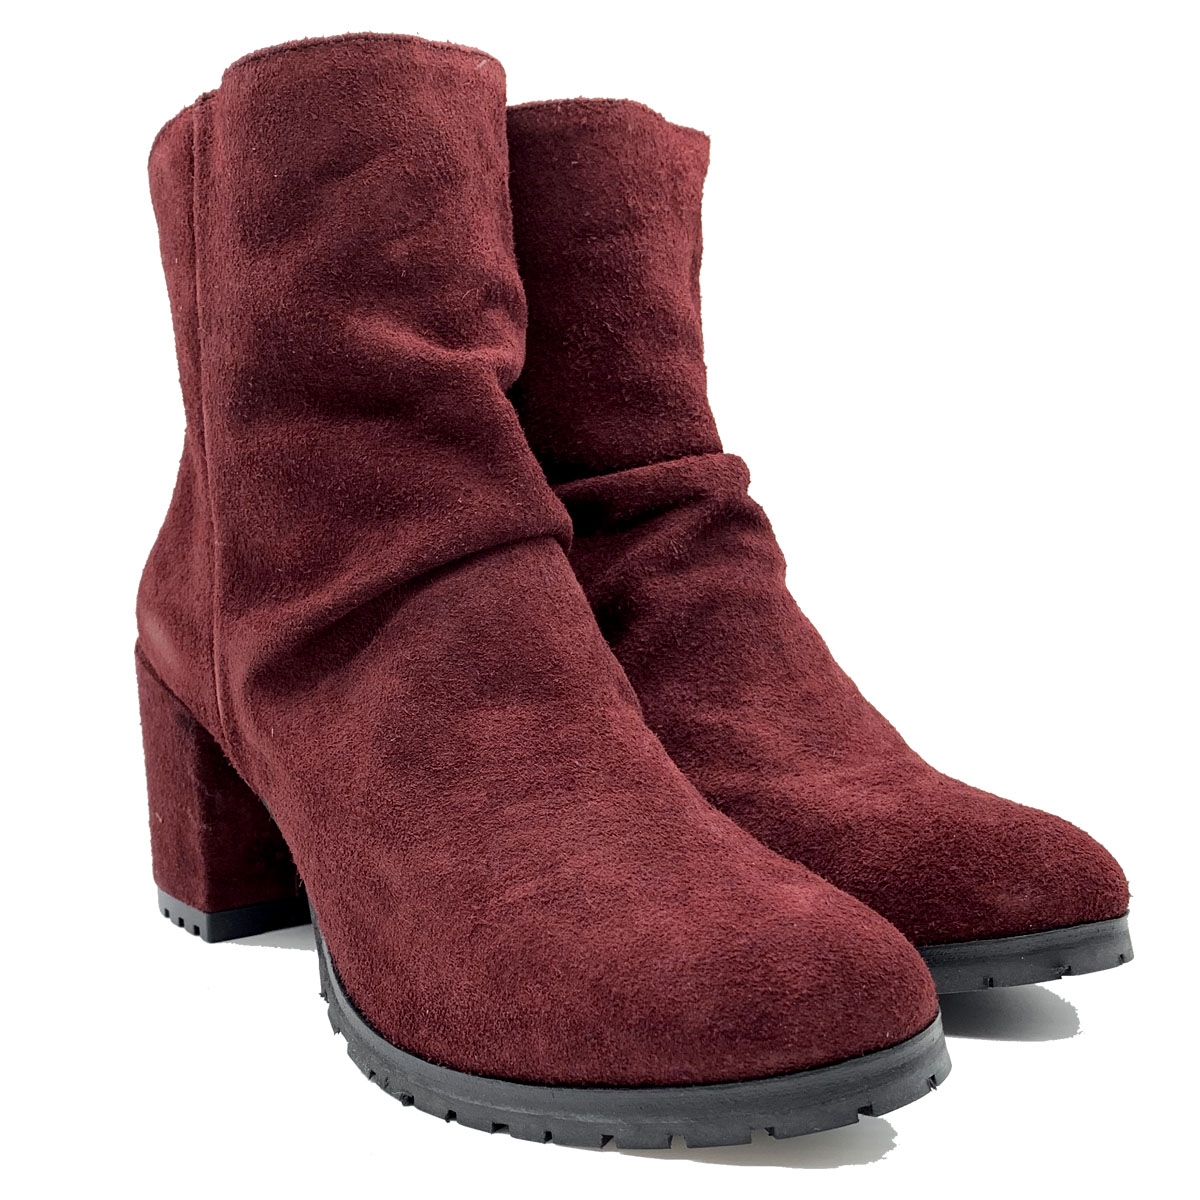 Women's Back Zip Ankle Boots Tattoo | Ankle Boots | 704BORDEAUX